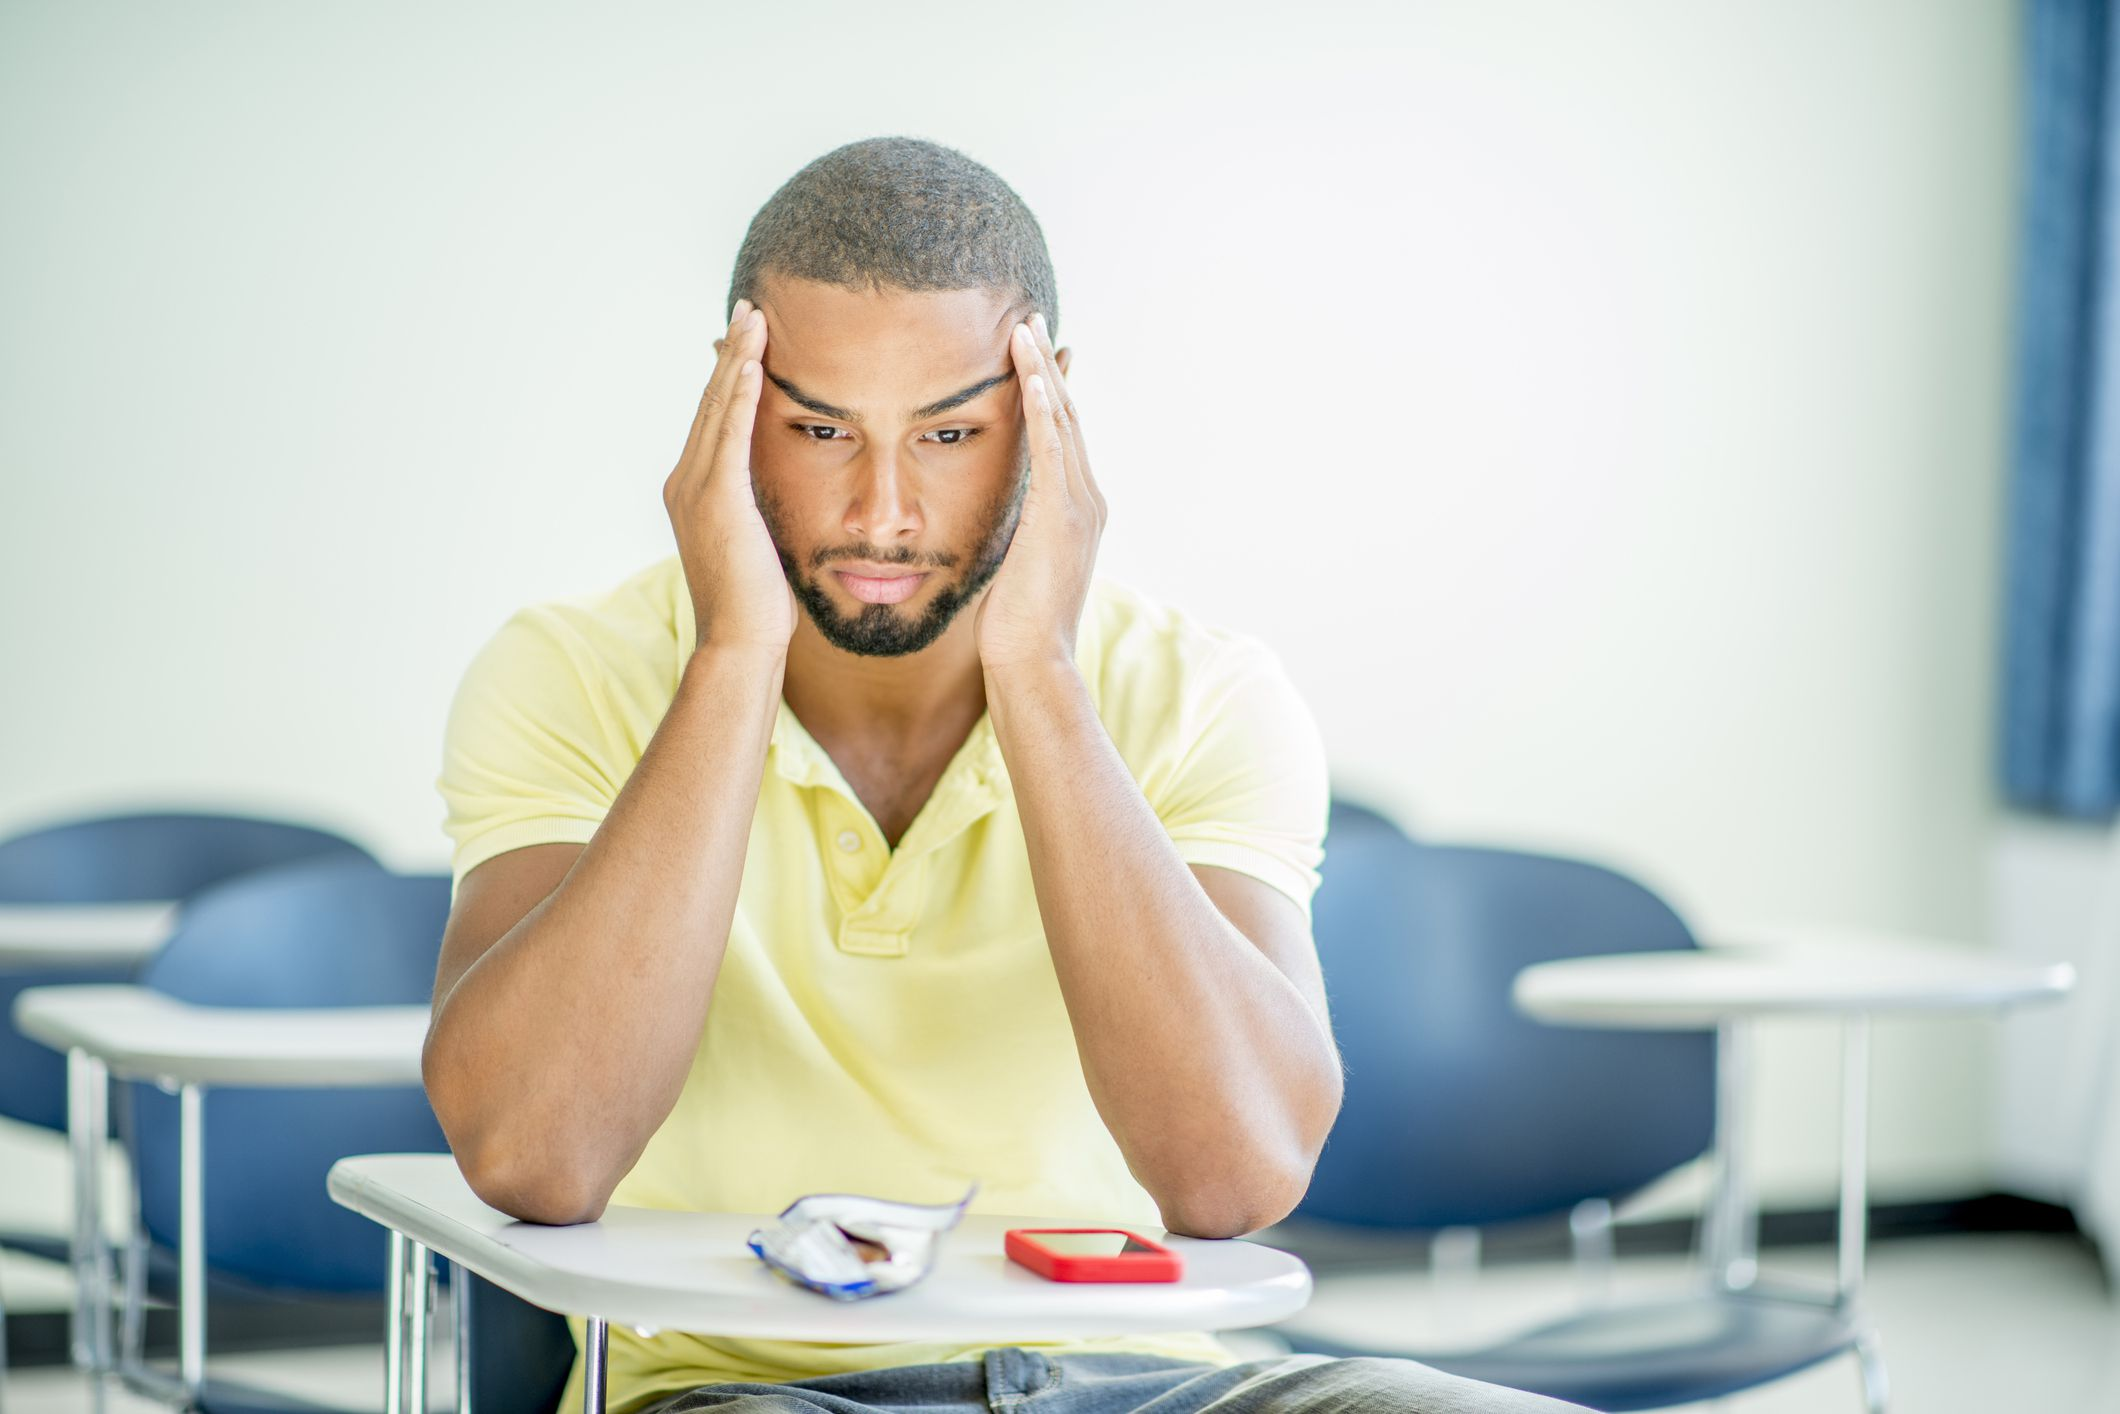 Coping With Borderline Personality Disorder in College